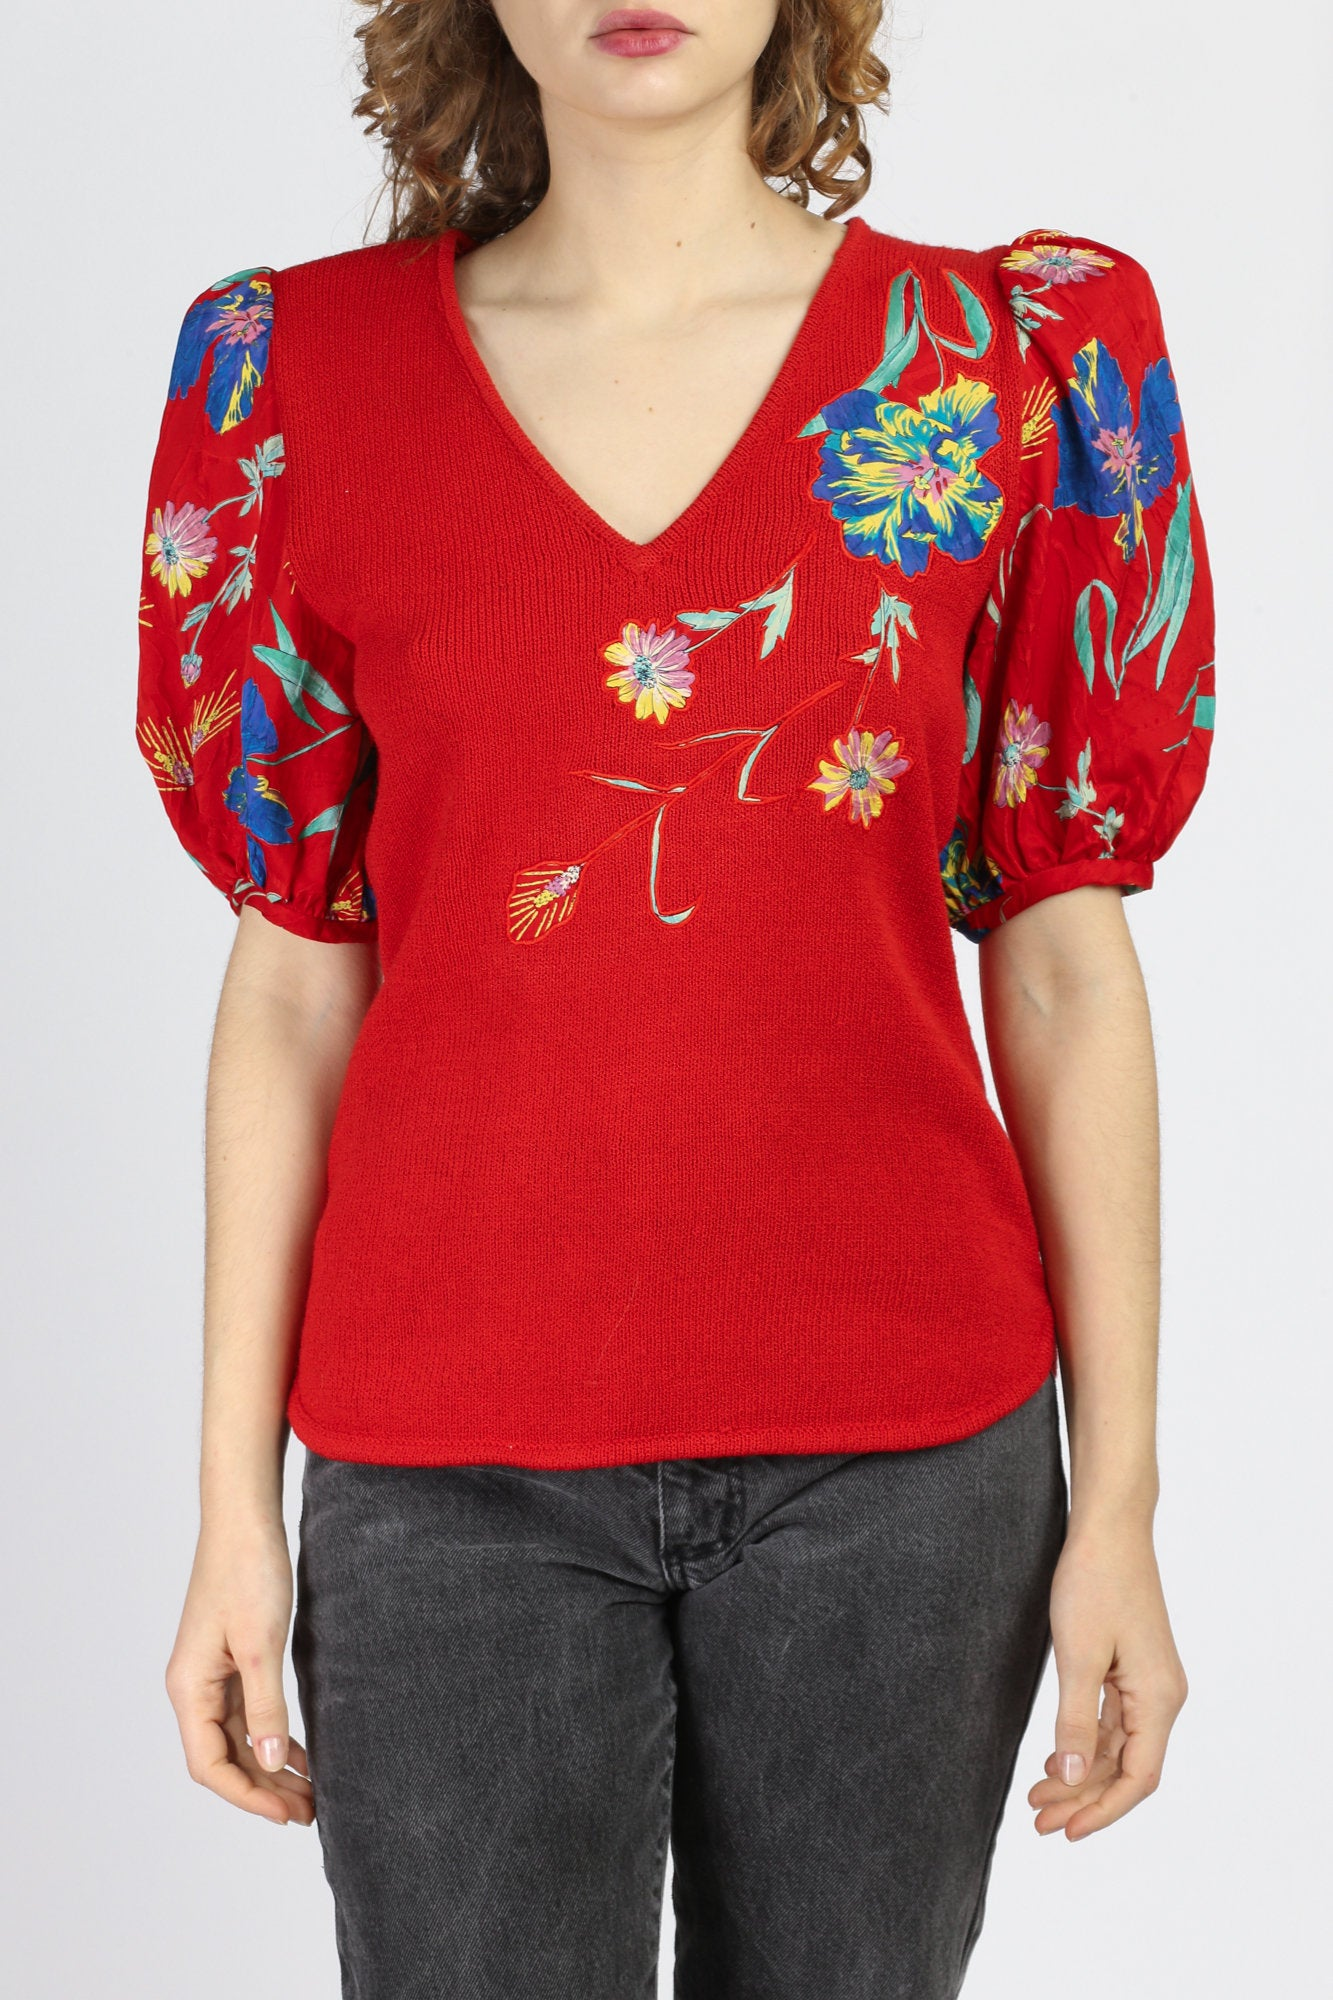 80s Red Knit Floral Puff Sleeve Top - Small